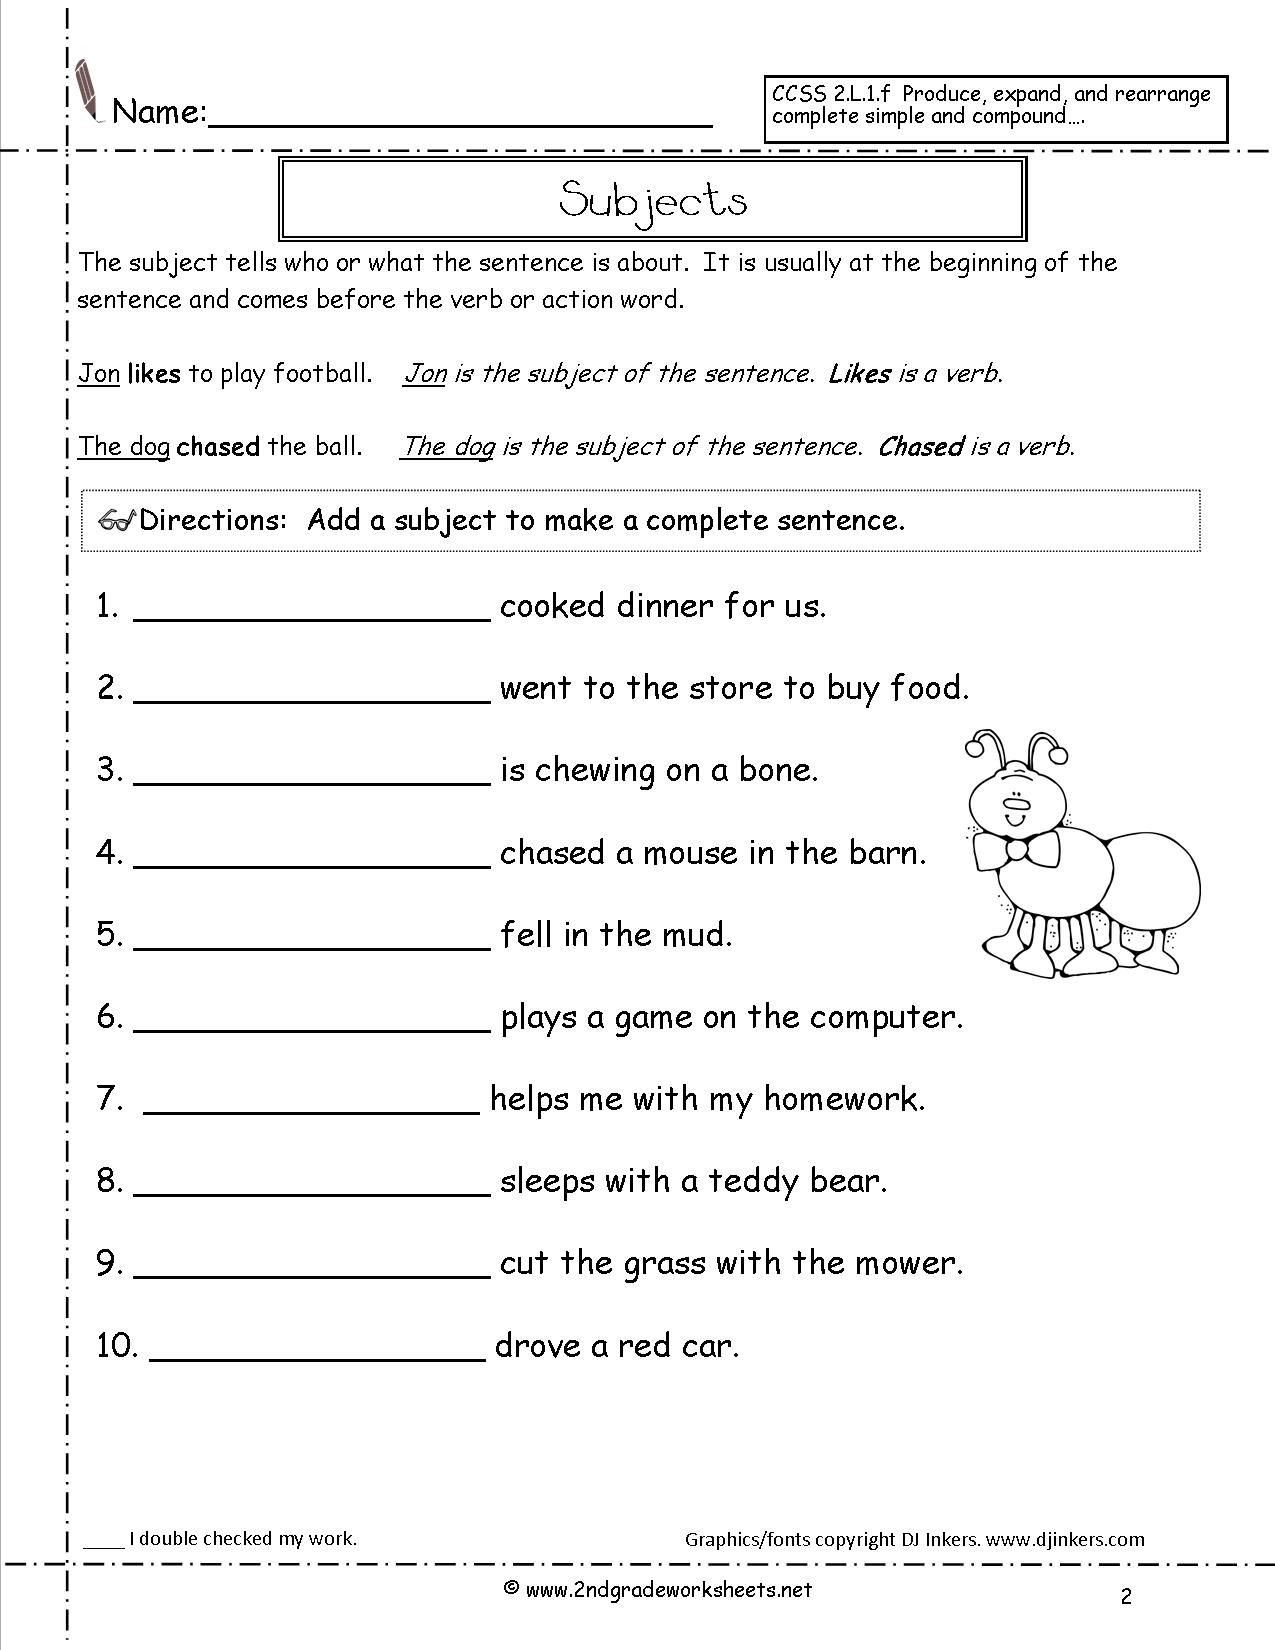 Complete Sentence Worksheet 3rd Grade Subjectworksheet2 1275—1650